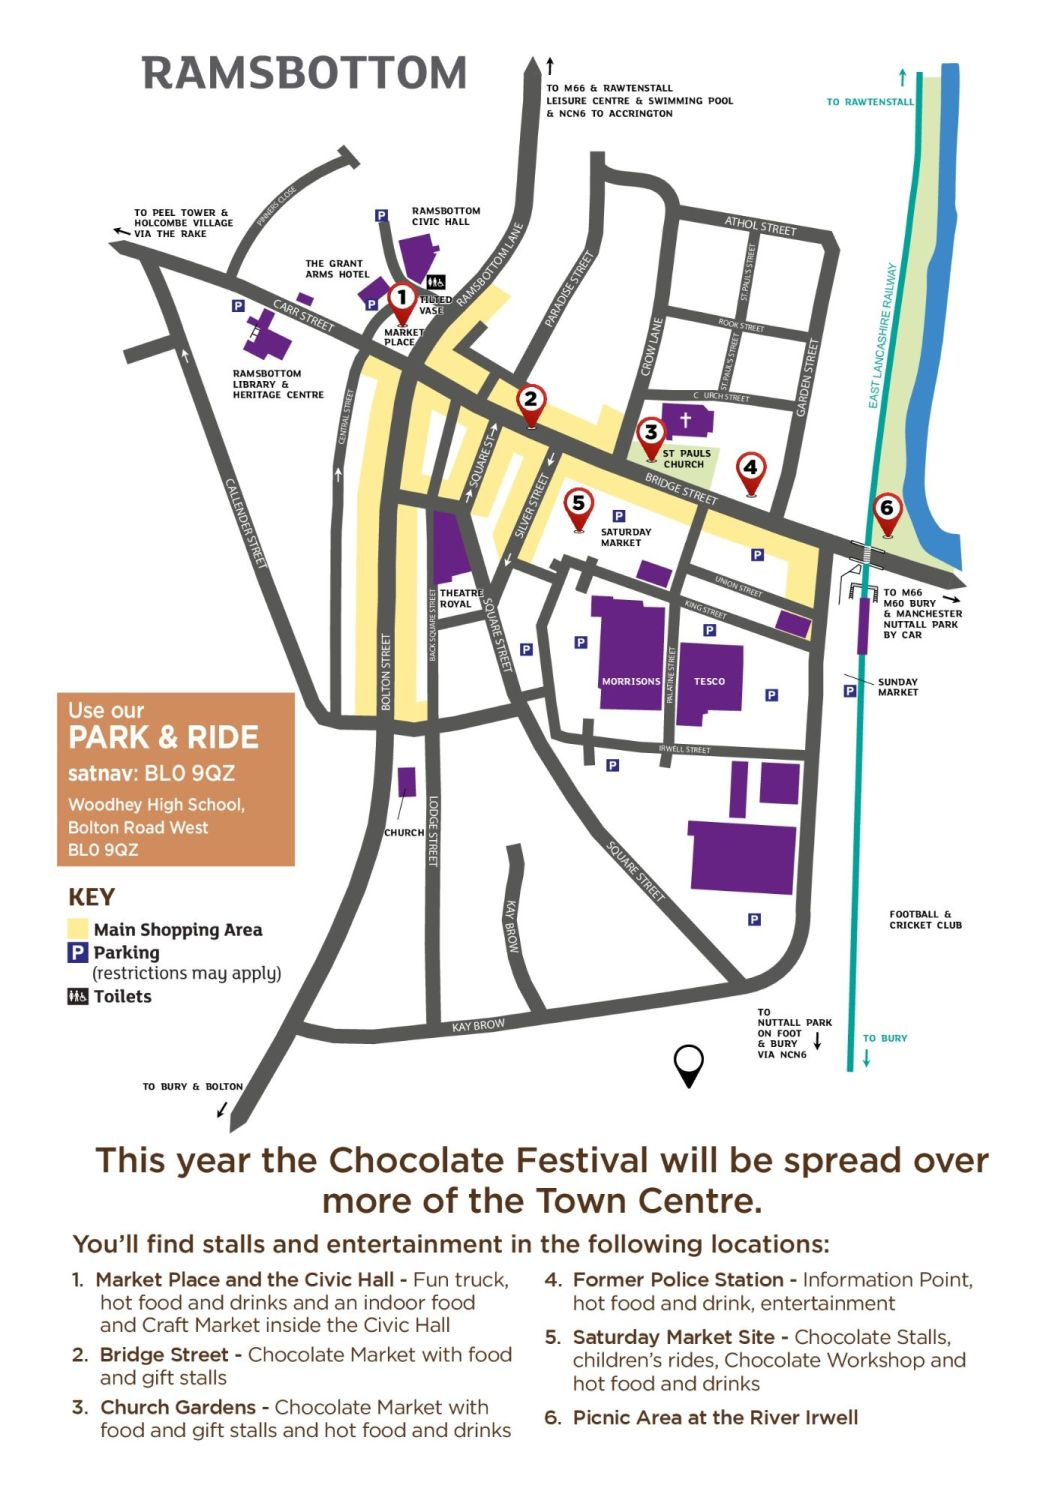 Map of Ramsbottom Chocolate Festival 2018 #chocfest18